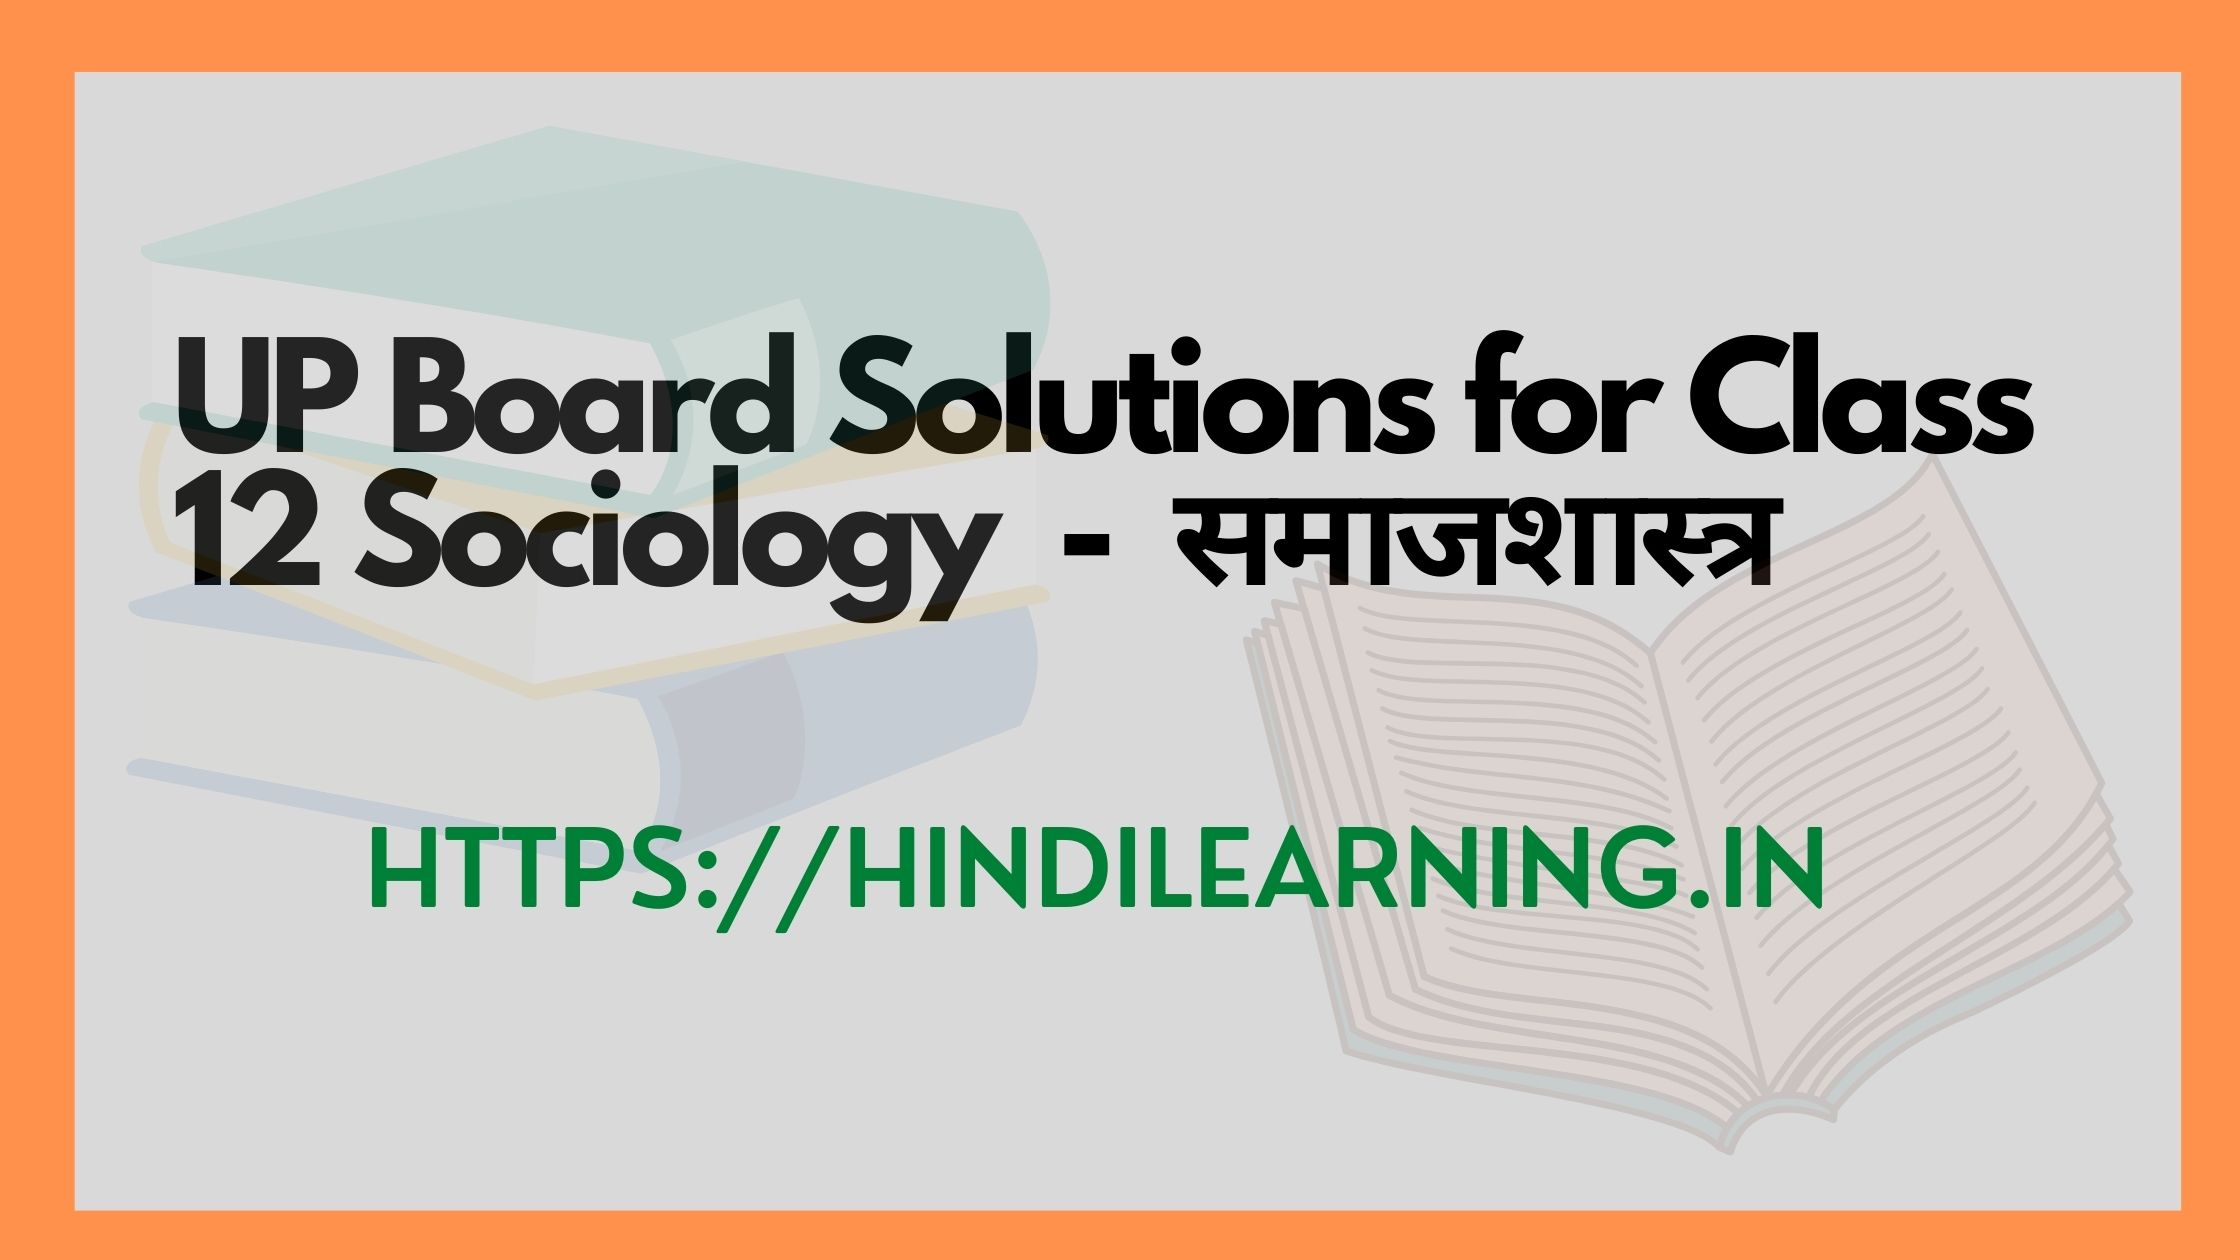 UP Board Solutions for Class 12 Sociology समाजशास्त्र